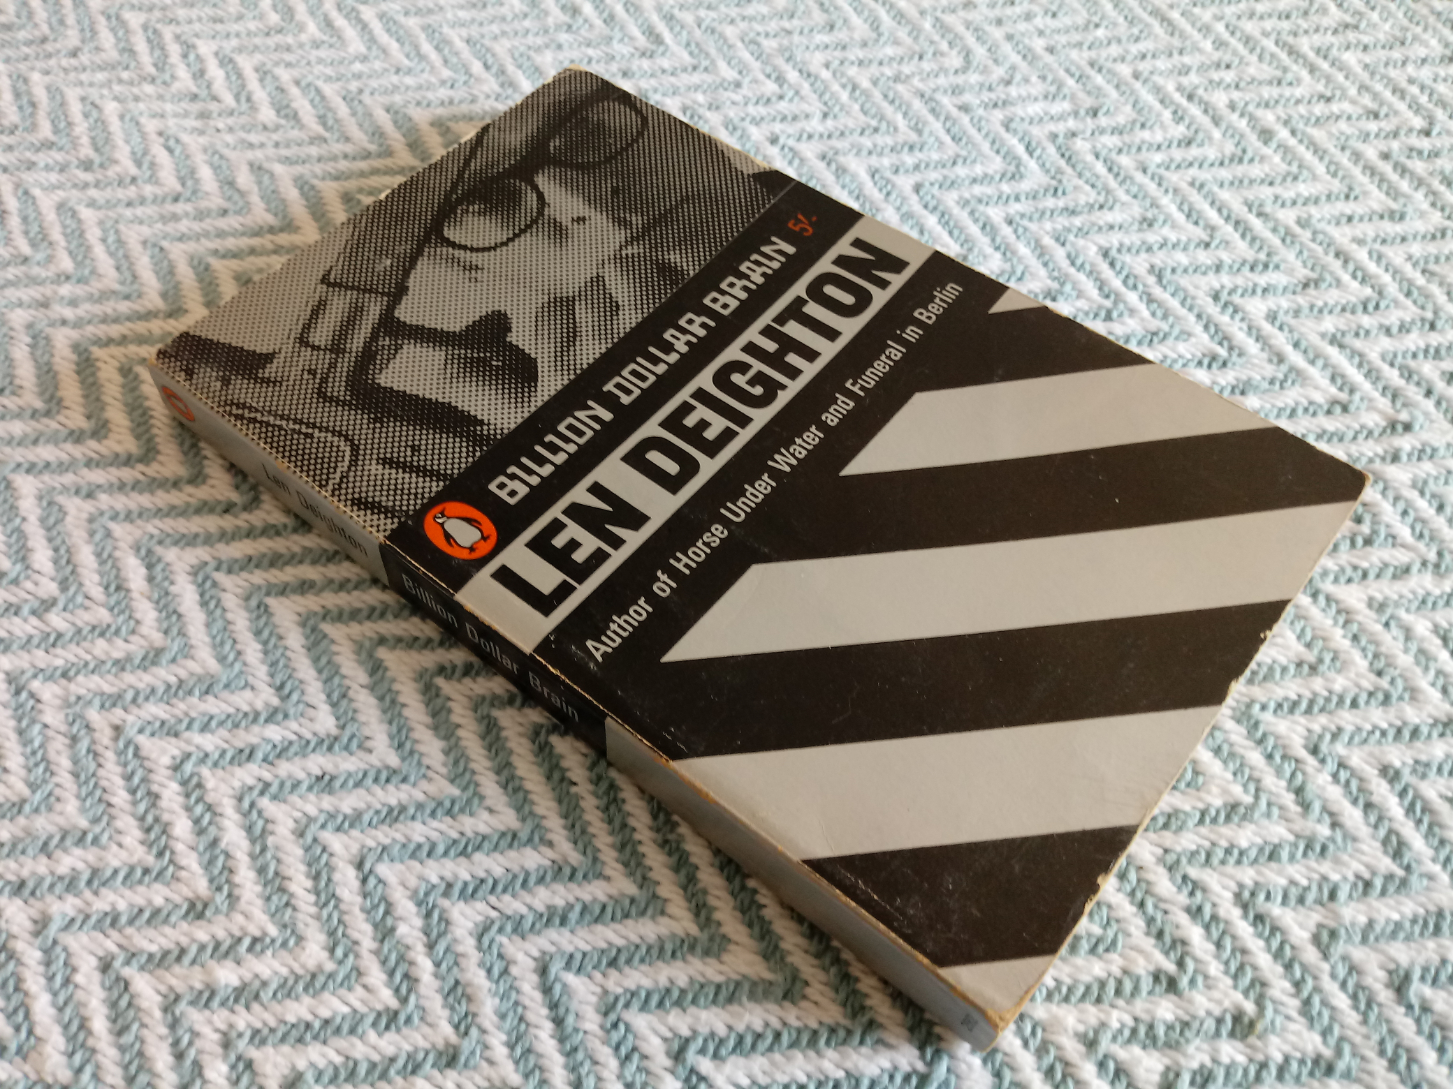 4 x Len Deighton softback books 1-Funeral in Berlin 256 pages publish Penguin books 1966 in good - Image 4 of 4